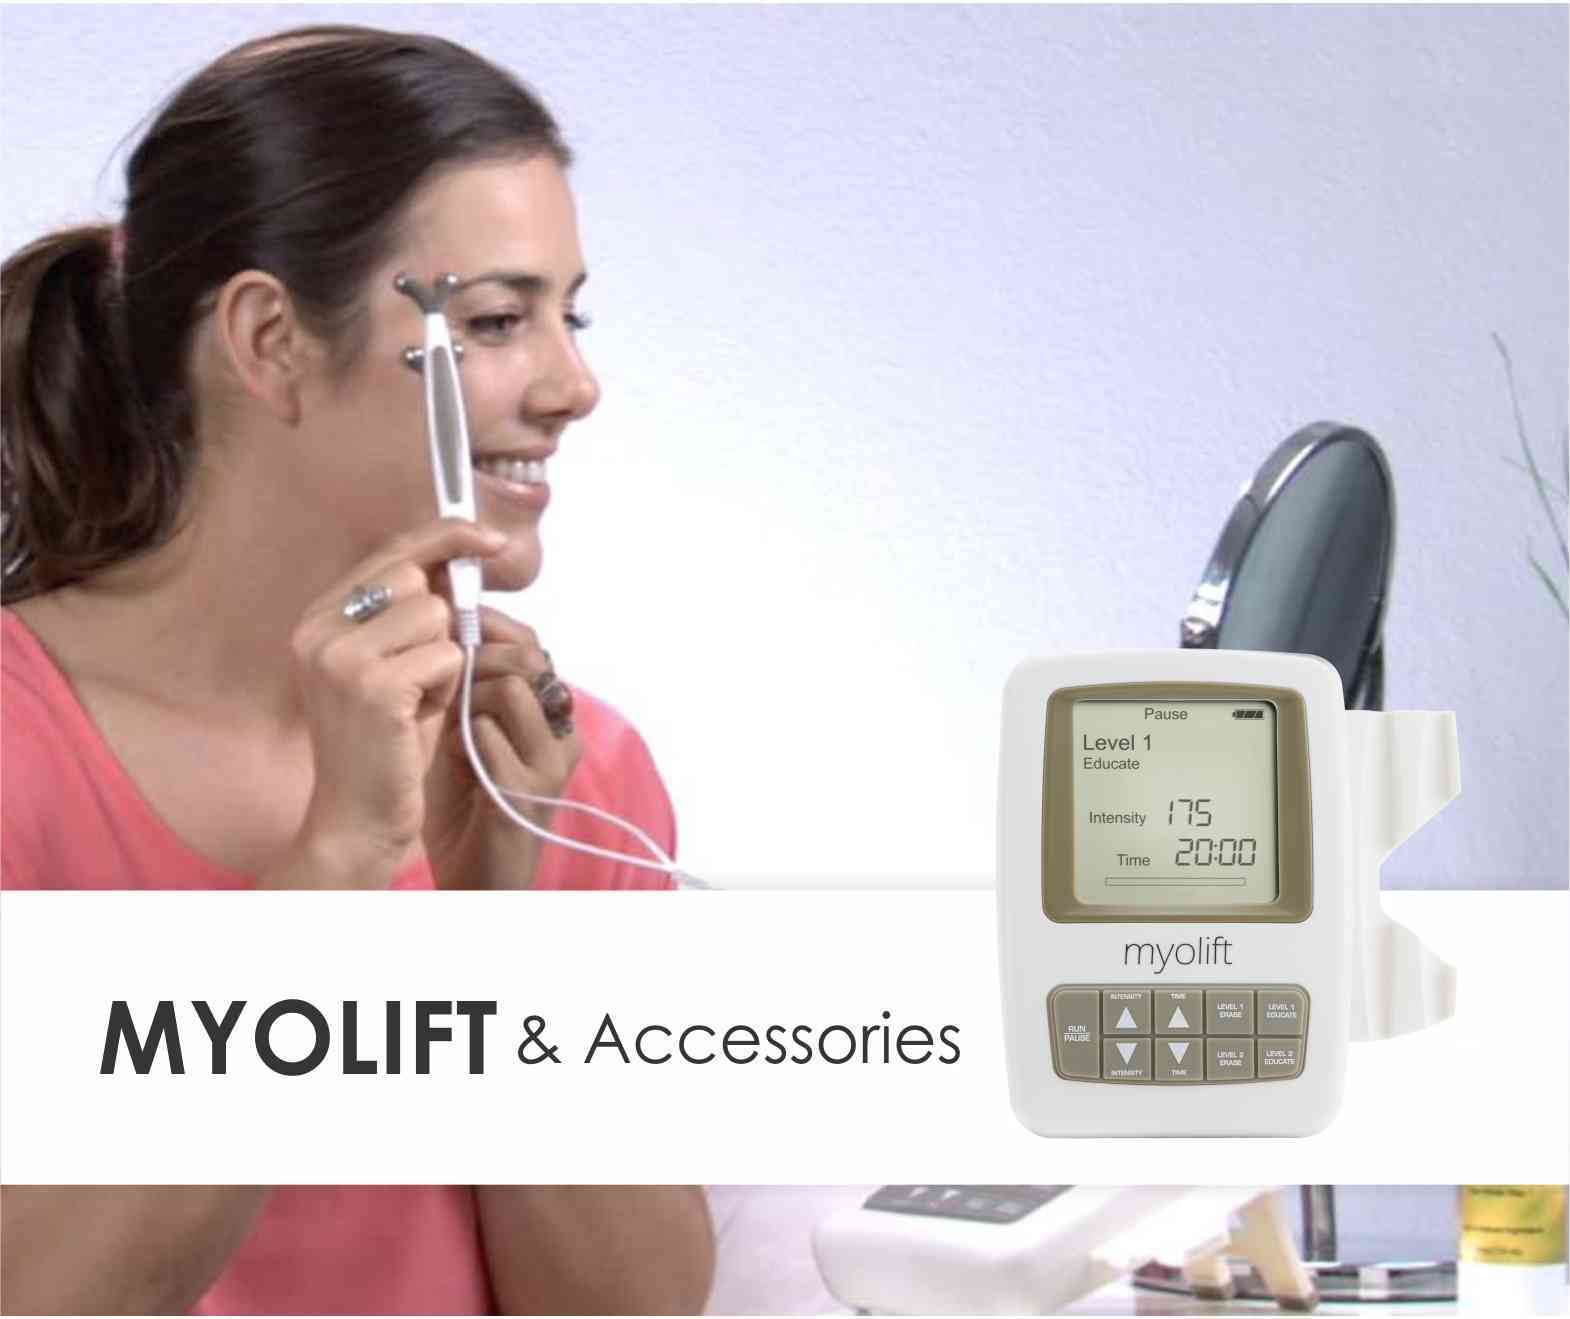 myolift and accessories